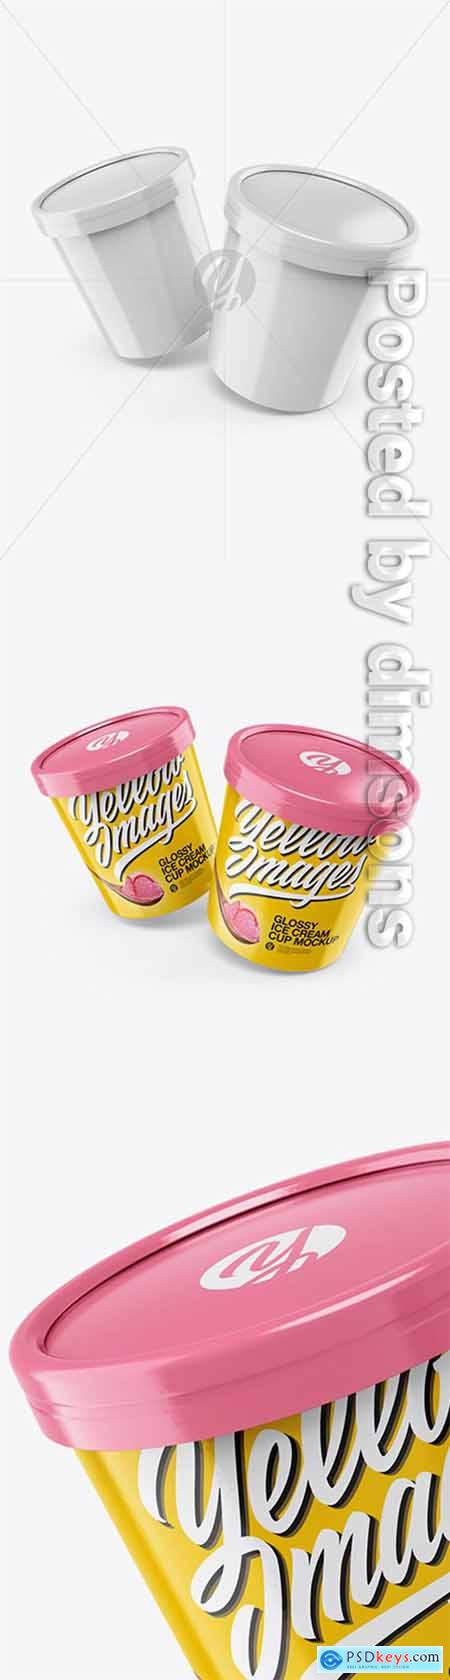 Two Glossy Ice Cream Cups Mockup 34190